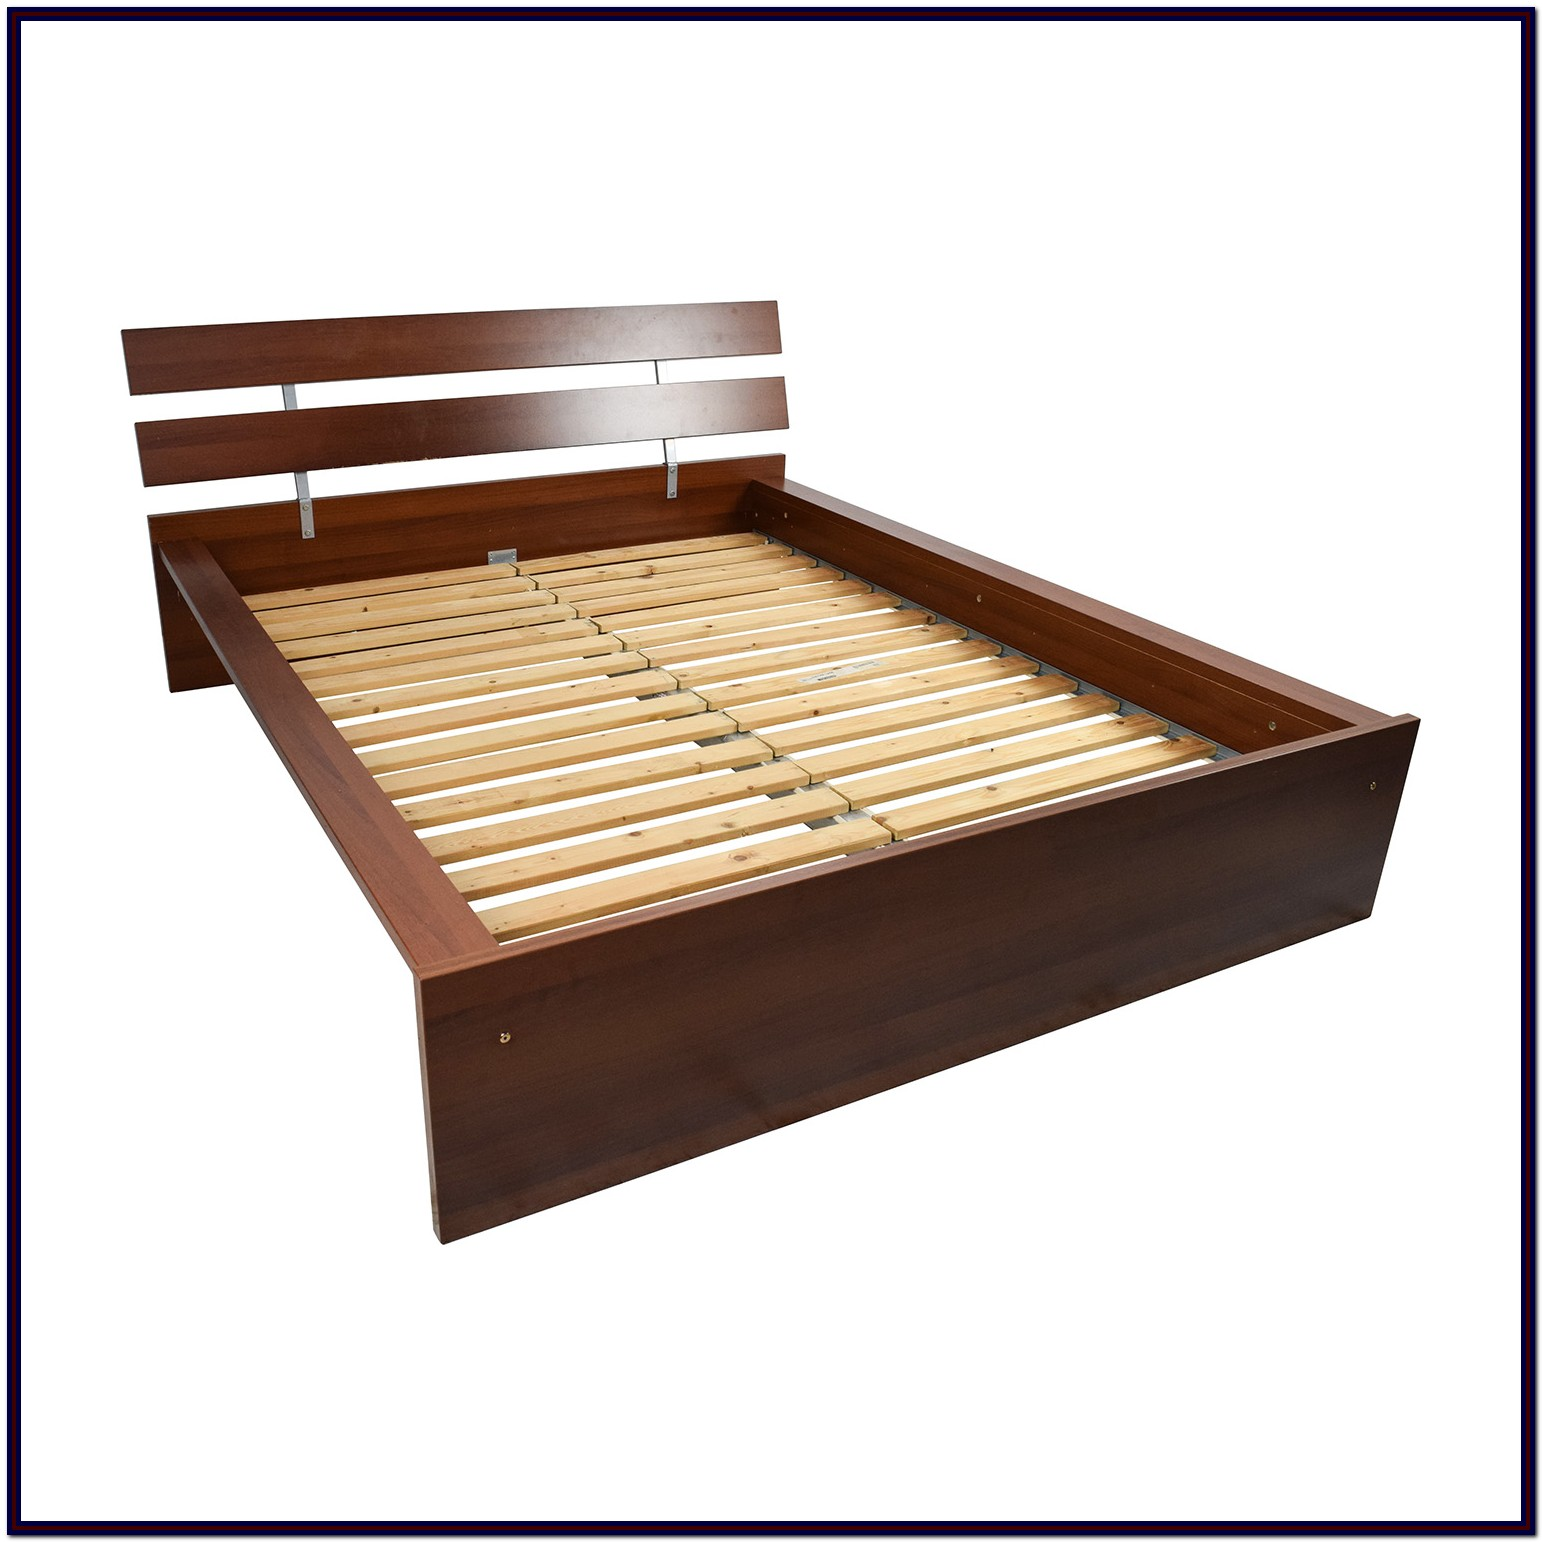 Queen Bed Frame Ikea Dimensions